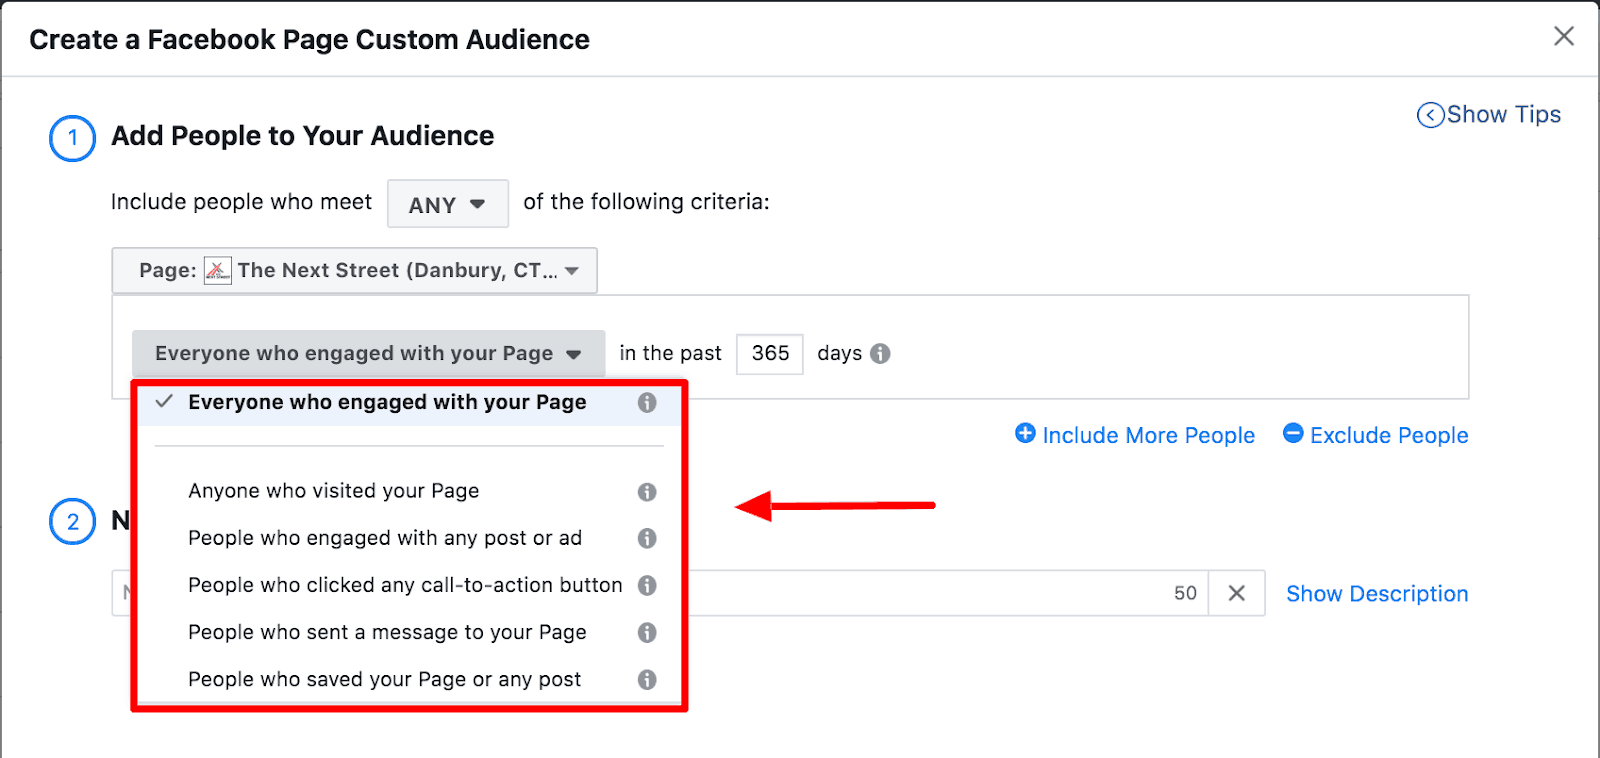 Screenshot showing how to create a Facebook Page custom audience.